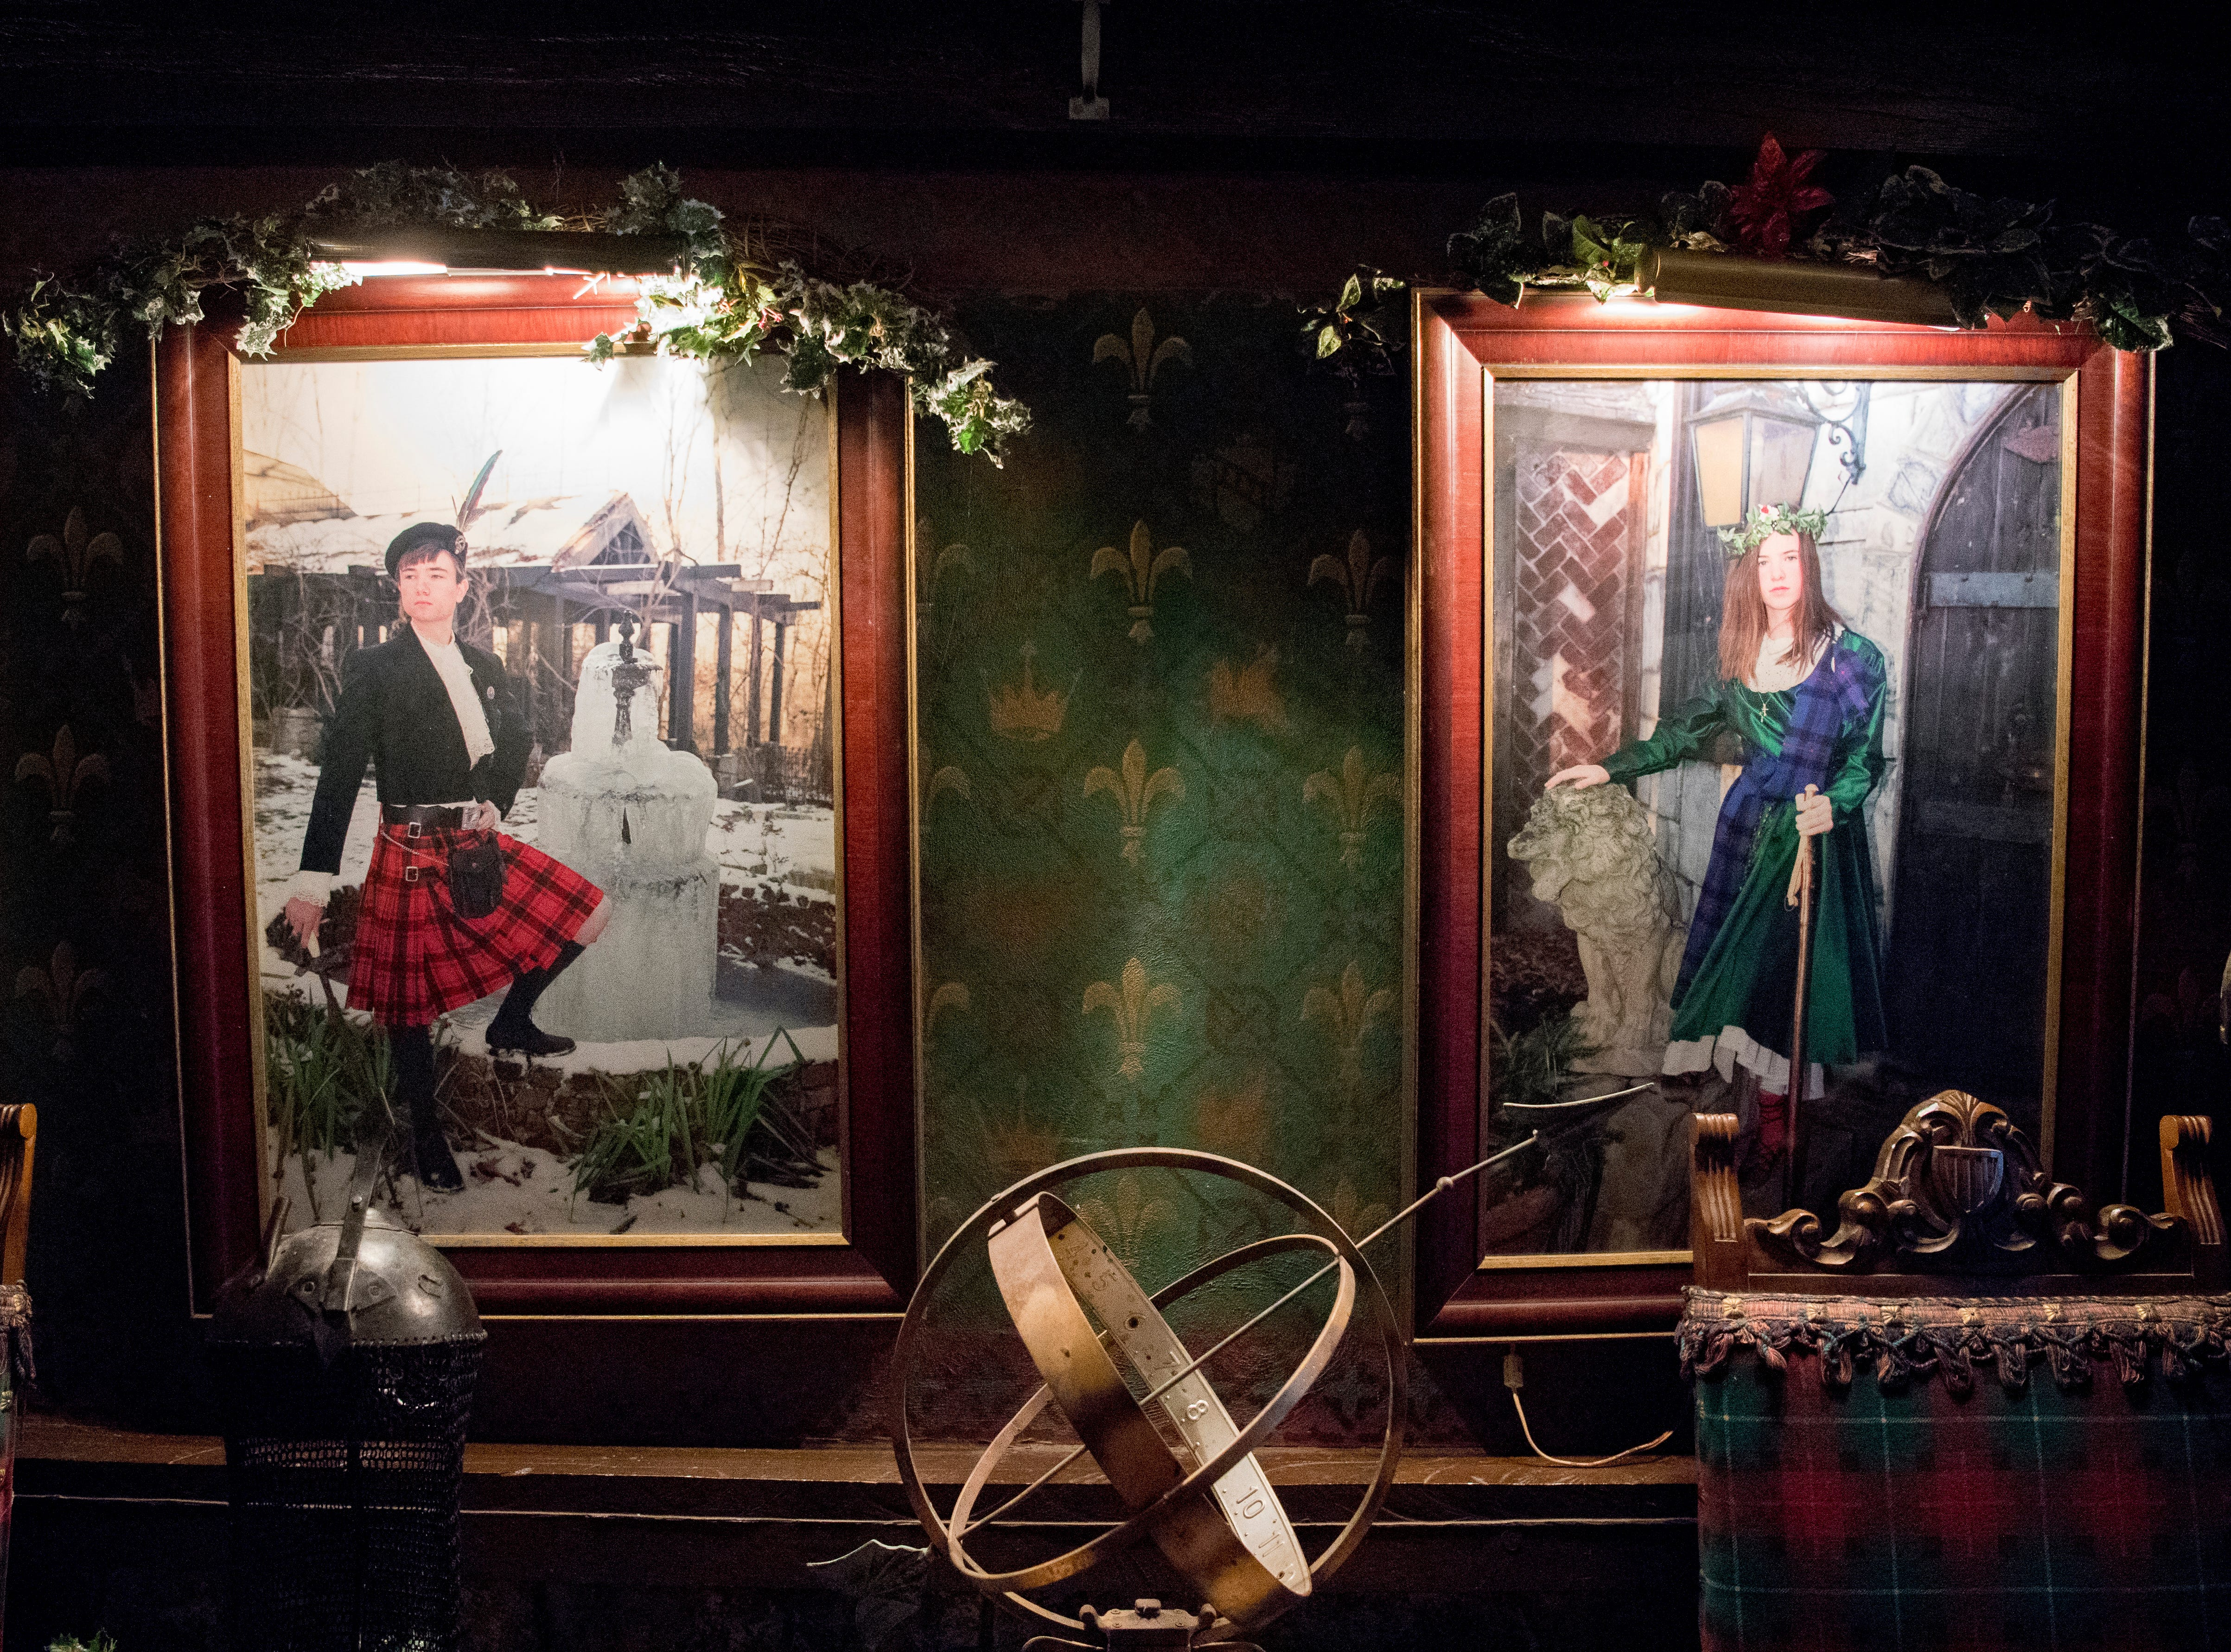 Painted portraits of Tyler and Julia Roy in the main hall inside Williamswood Castle in South Knoxville, Tennessee. The home, modeled after a medieval castle, was built by their grandmother Julia Tucker beginning in 1991 and took six years to complete. Many of the items in the home were sourced from around the Knoxville area. In 2019, the castle was listed on Airbnb.